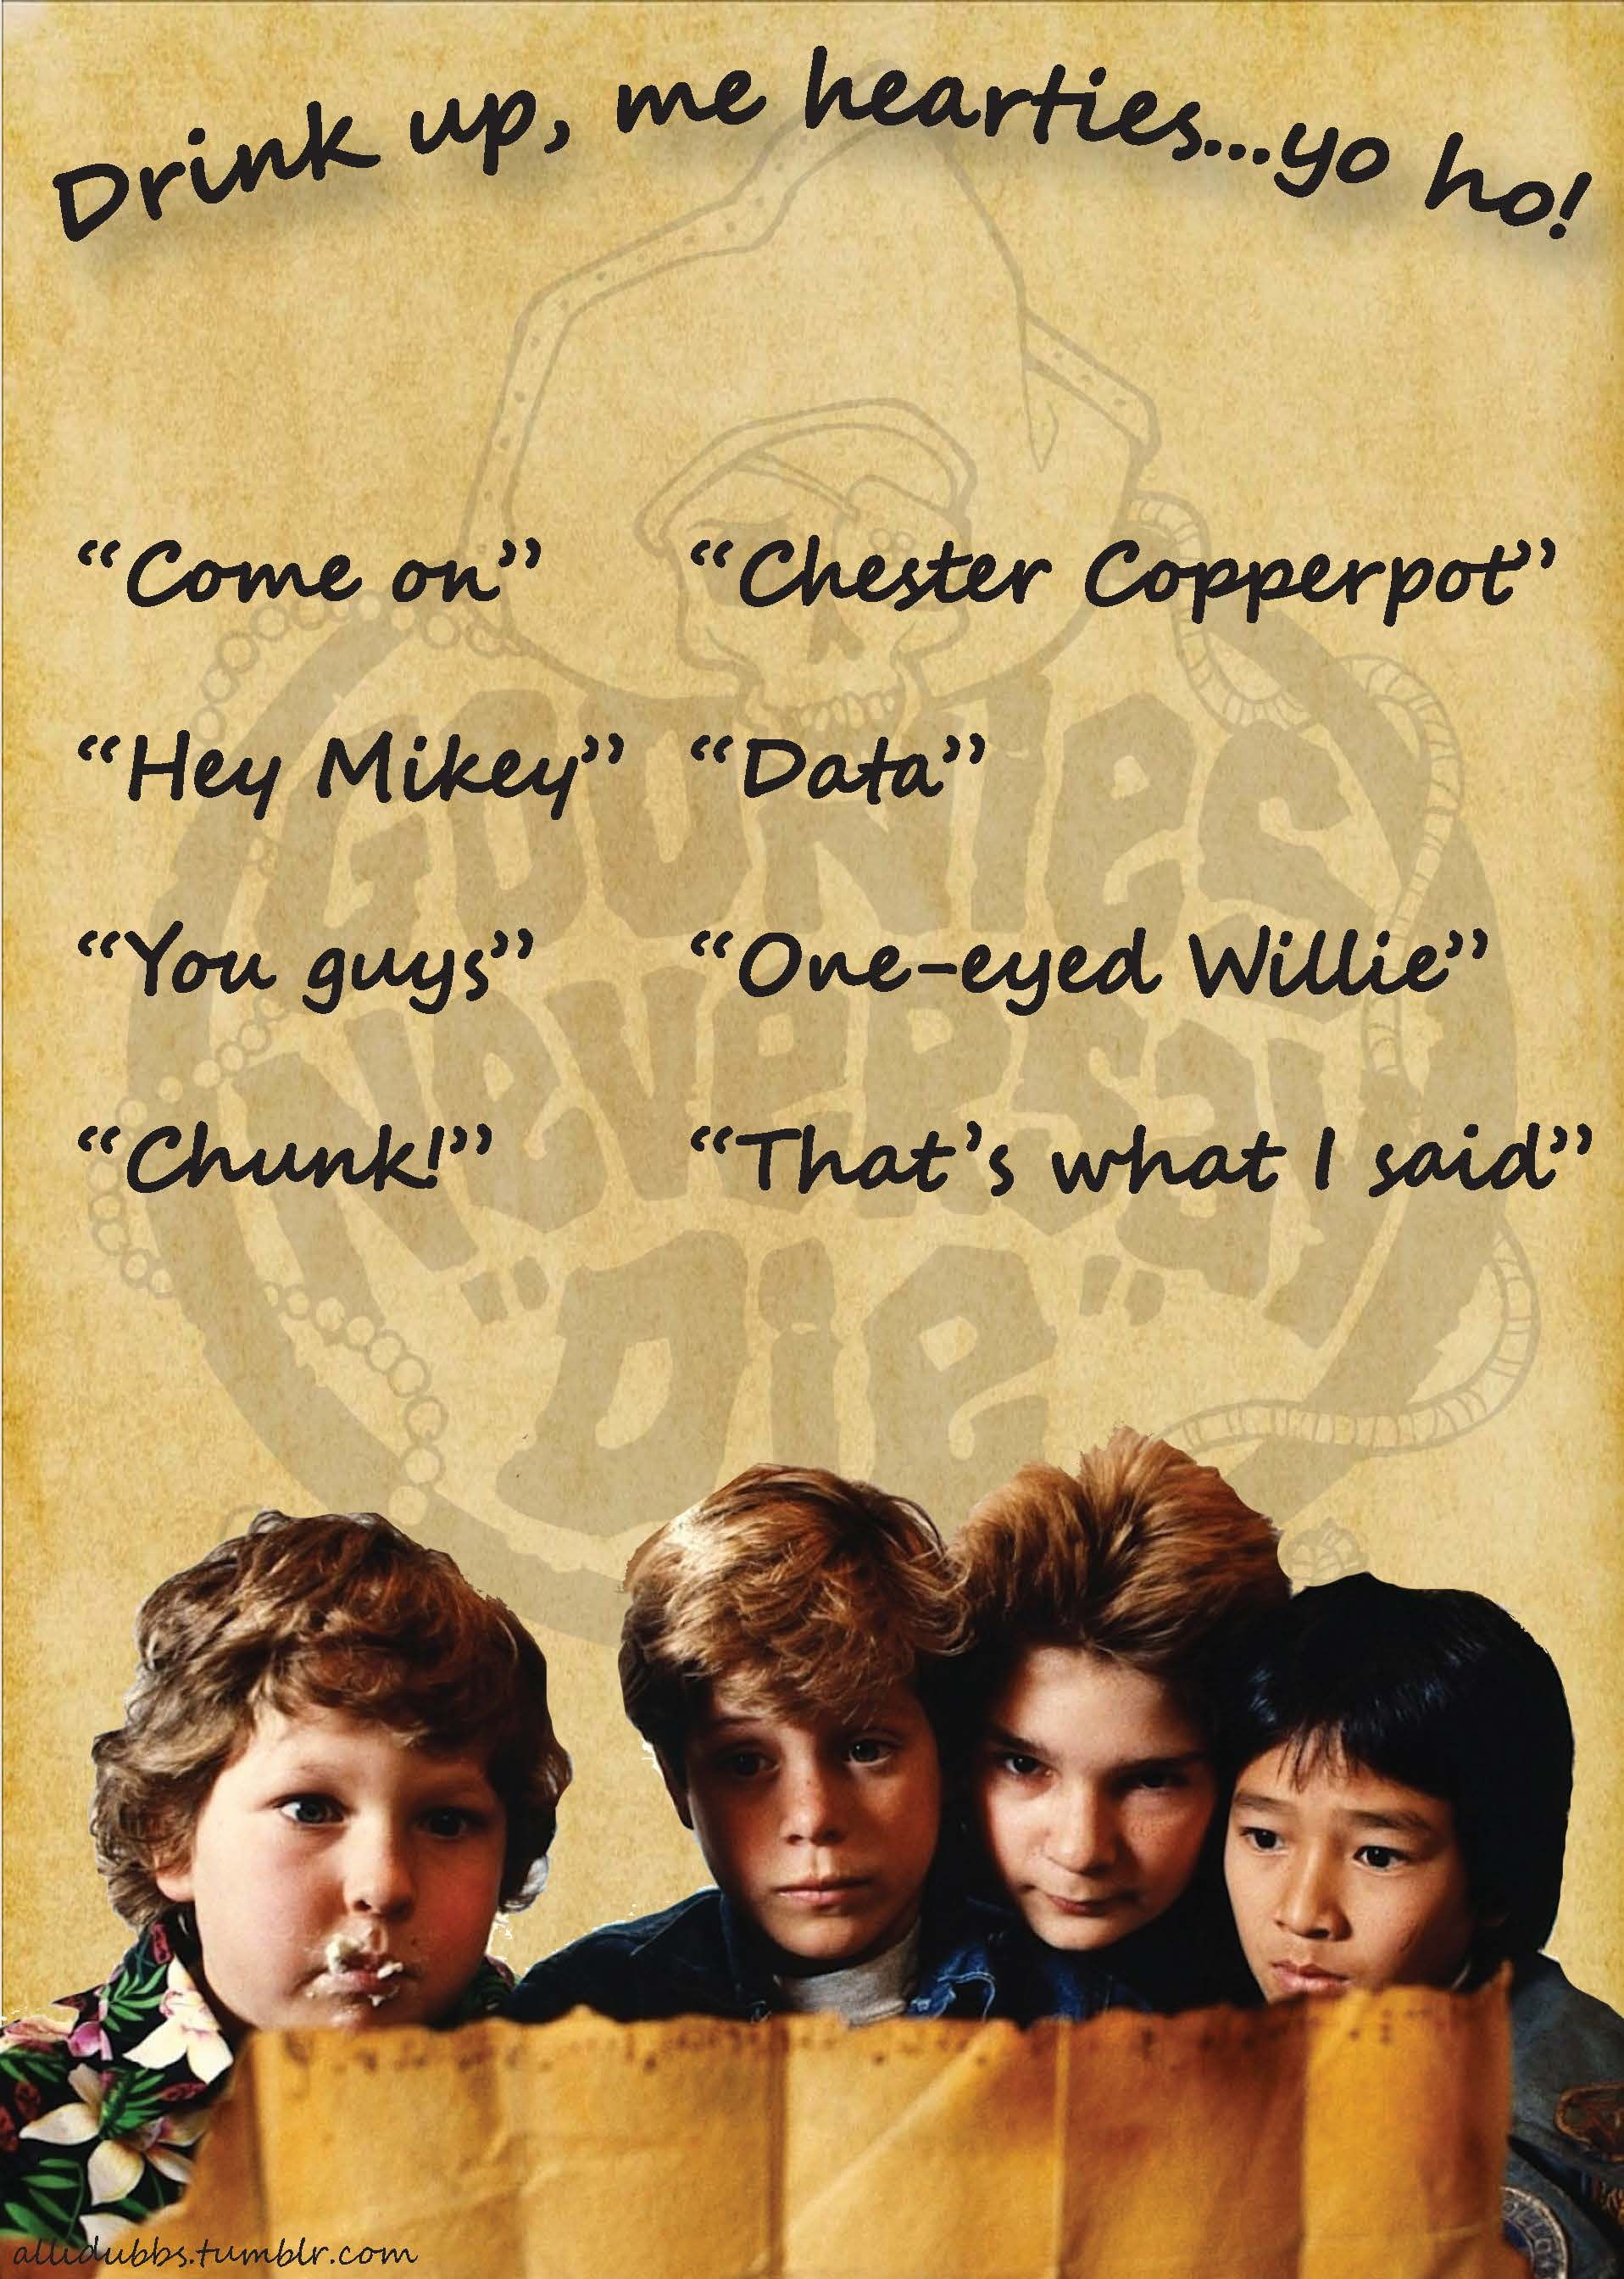 The Goonies Drinking Game Take A Drink Each Time You Hear One Of These Phrases Tv Show Drinking Games Fun Drinking Games Drinking Games Drink any time you hear veteran quarterback or something about georgia losing a bunch of players on defense. the goonies drinking game take a